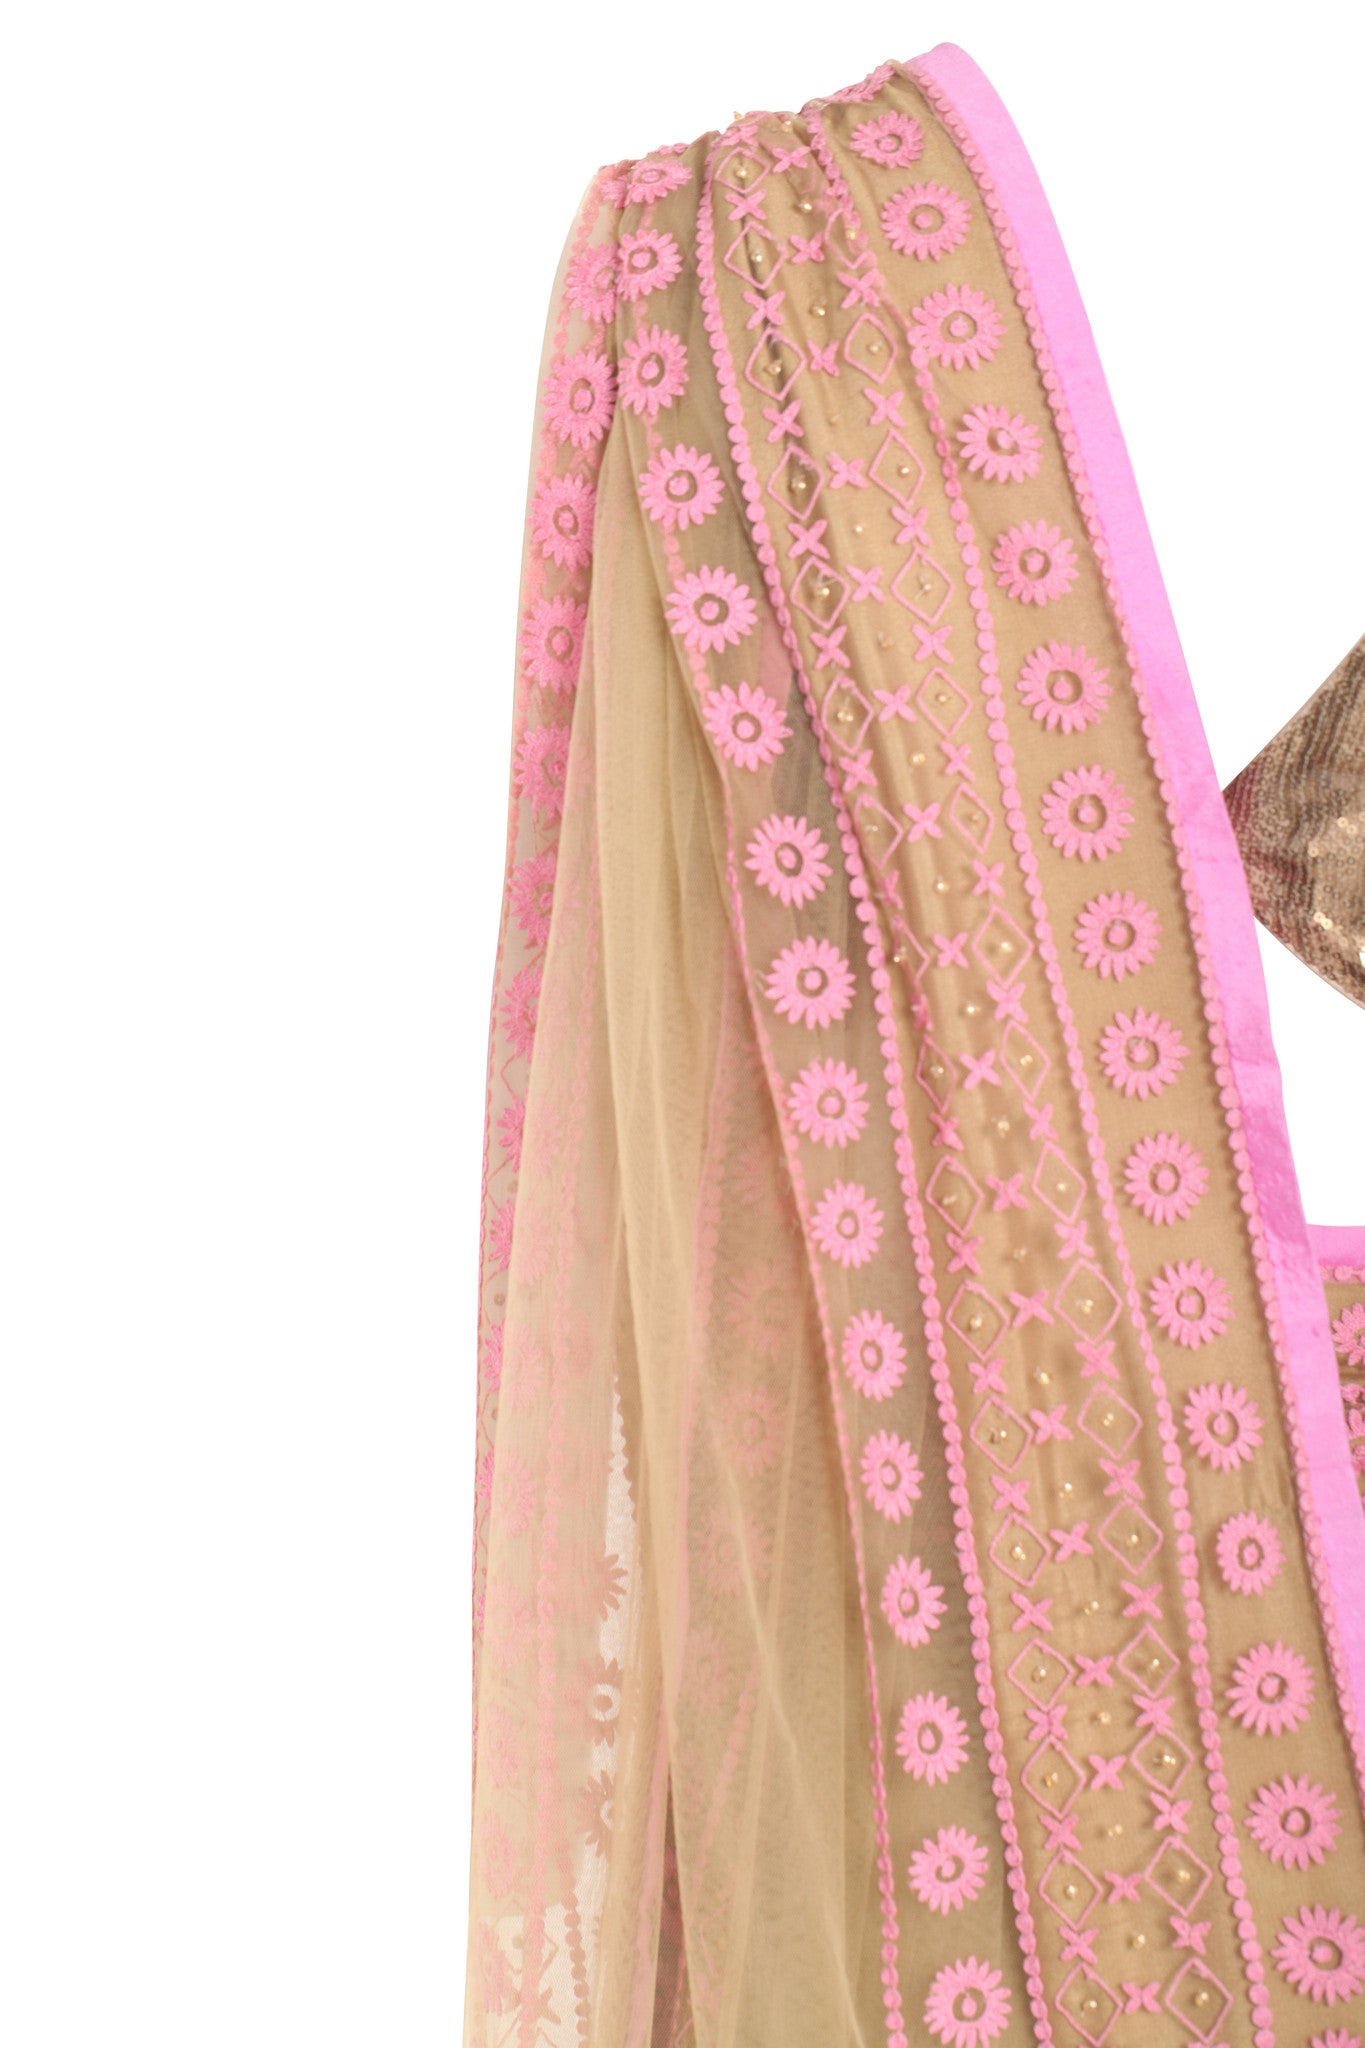 Shehla Khan Khaki Beige Tulle Saree Baby Pink Border Mannequin Close Up